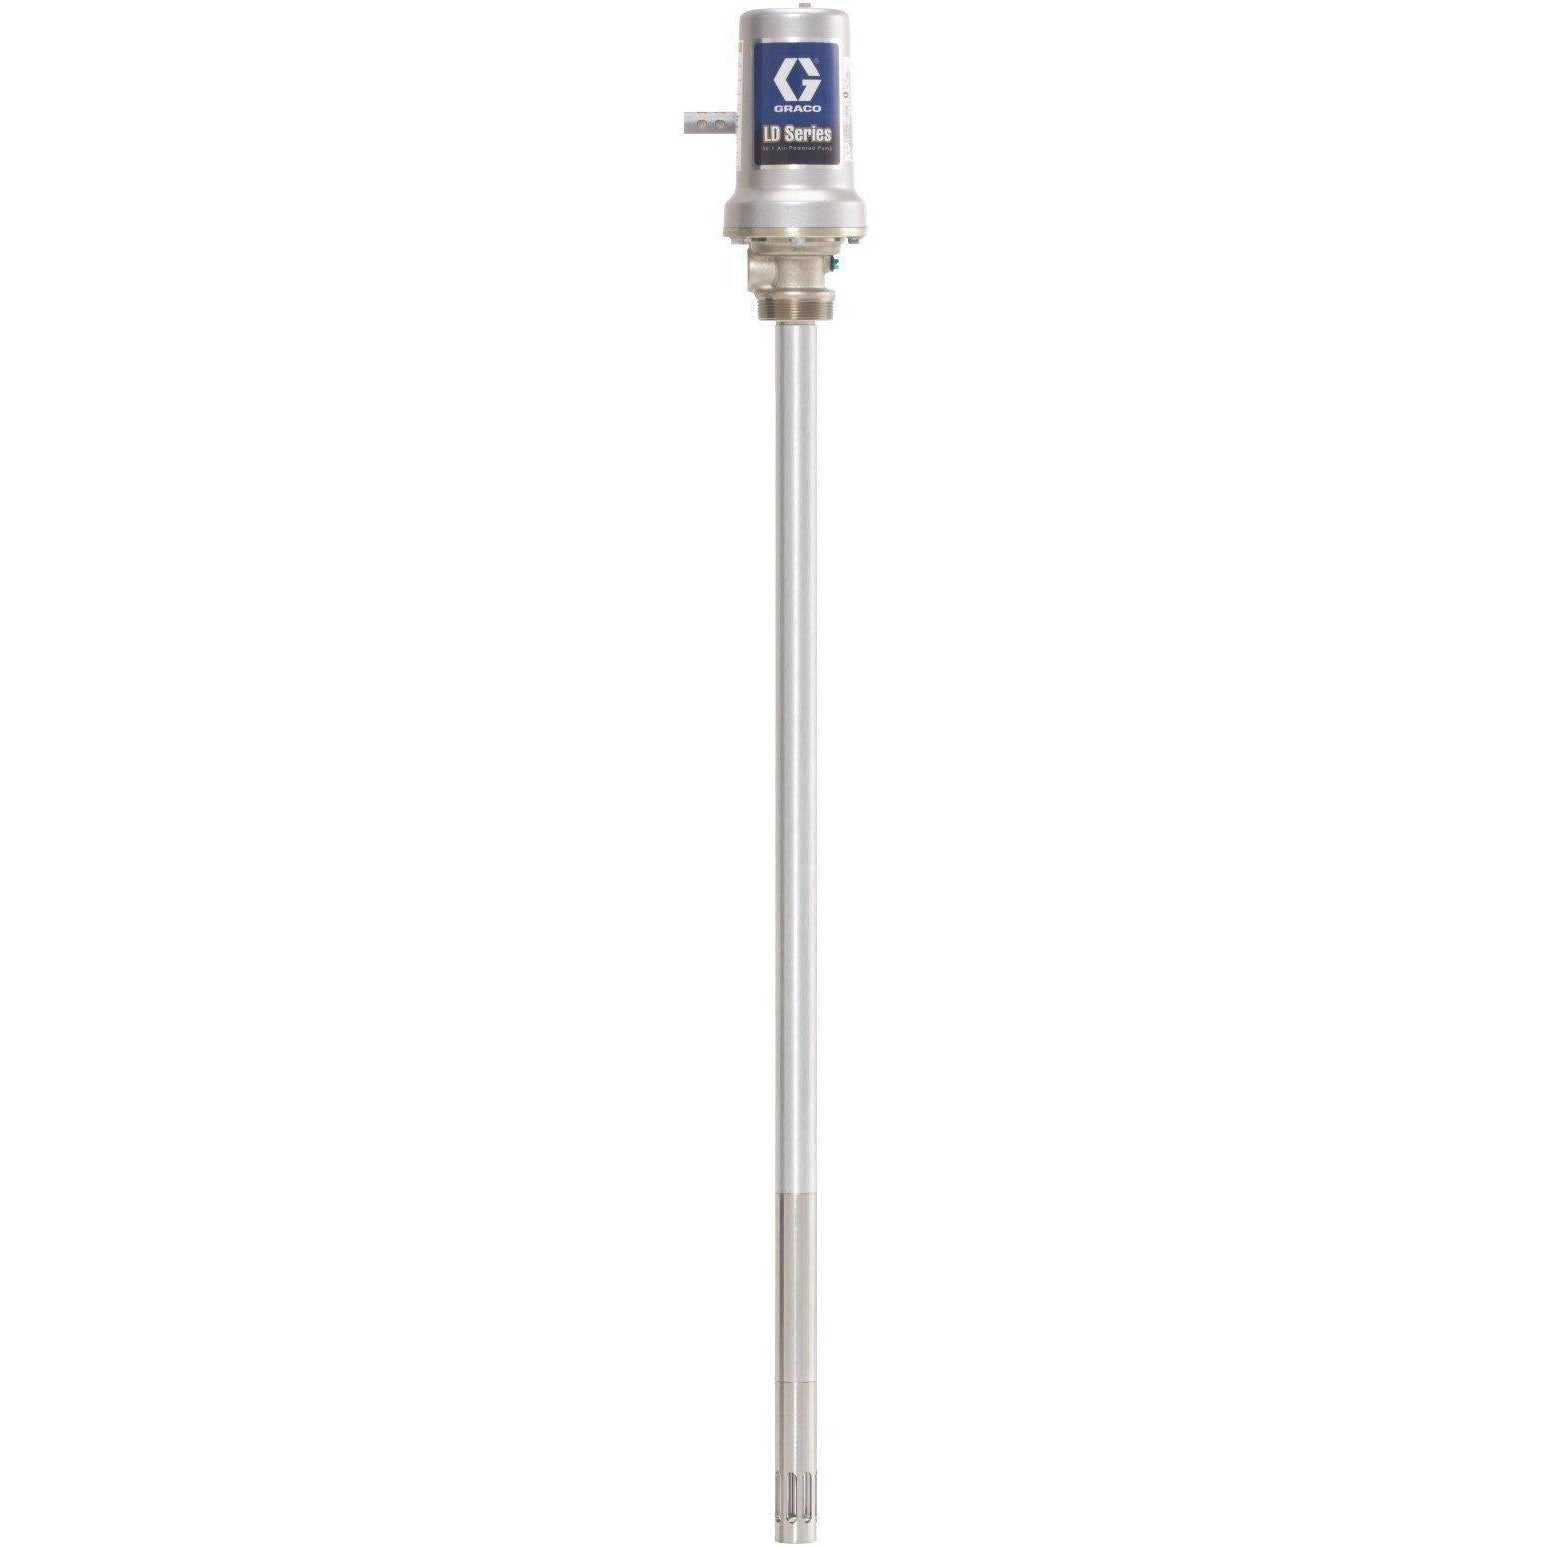 24G606-Graco 24G606 Ld Series 50:1 Pump For 400 Lb. Pail - Npt-Order-Online-Fireball-Equipment